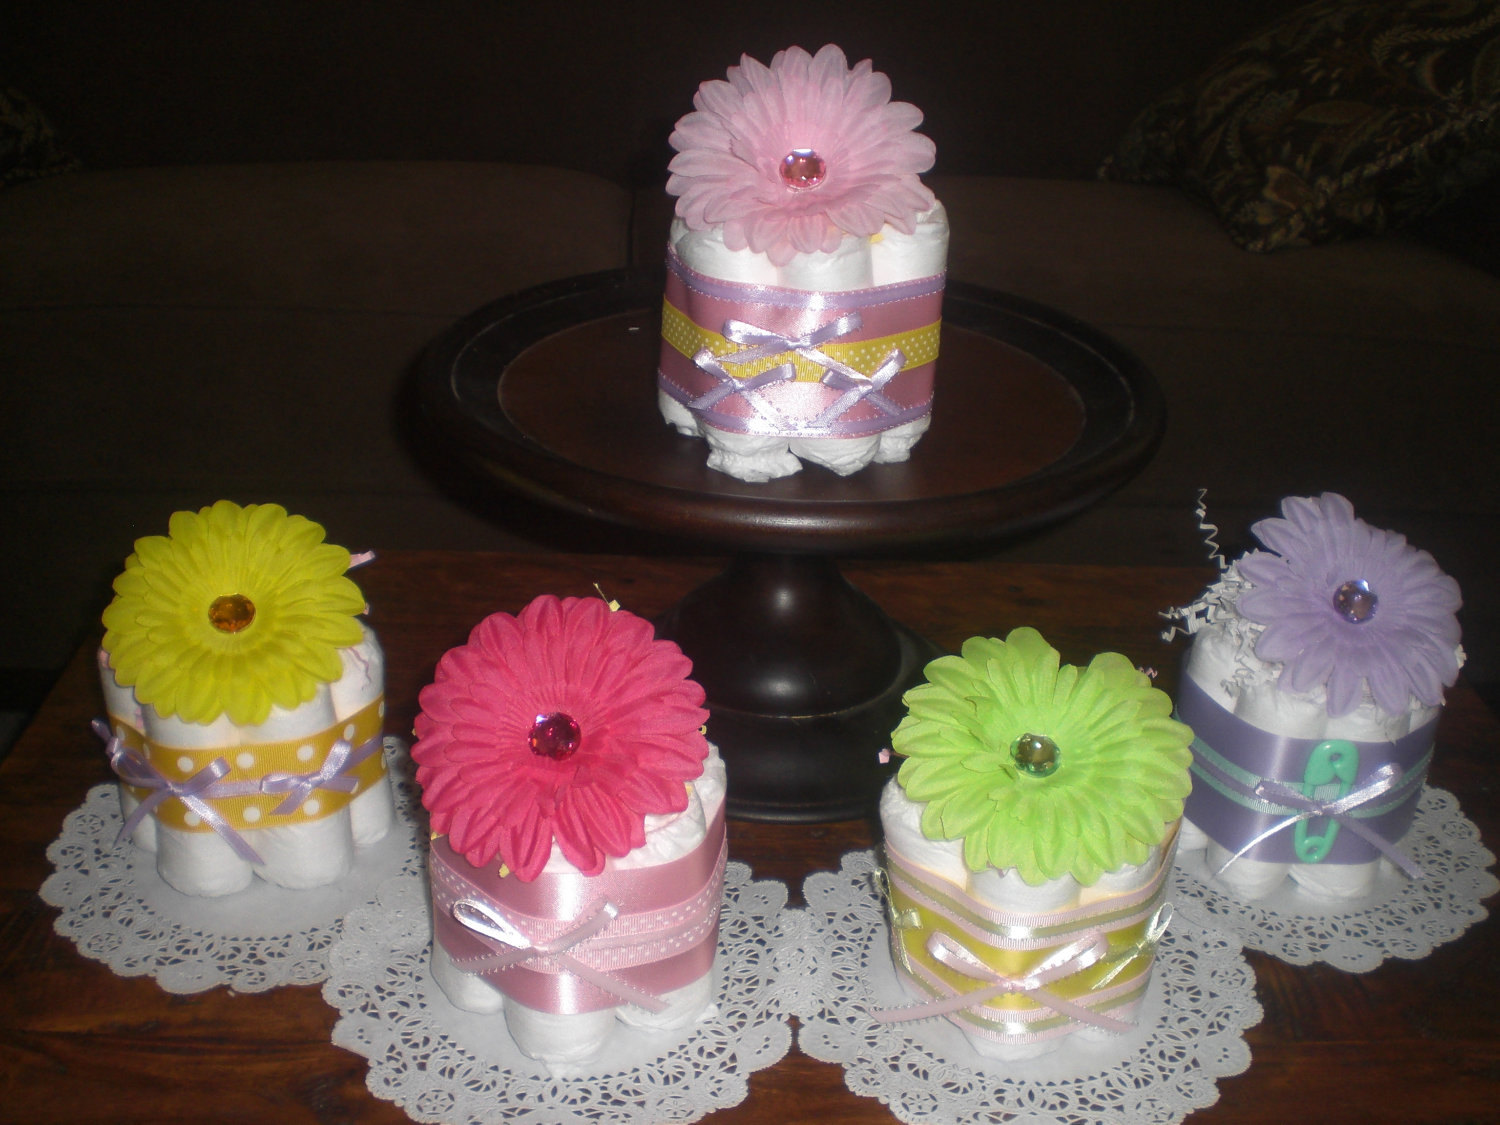 Diaper Cake Centerpiece For Baby Shower : Flower Baby Shower Centerpieces mini diaper cakes different